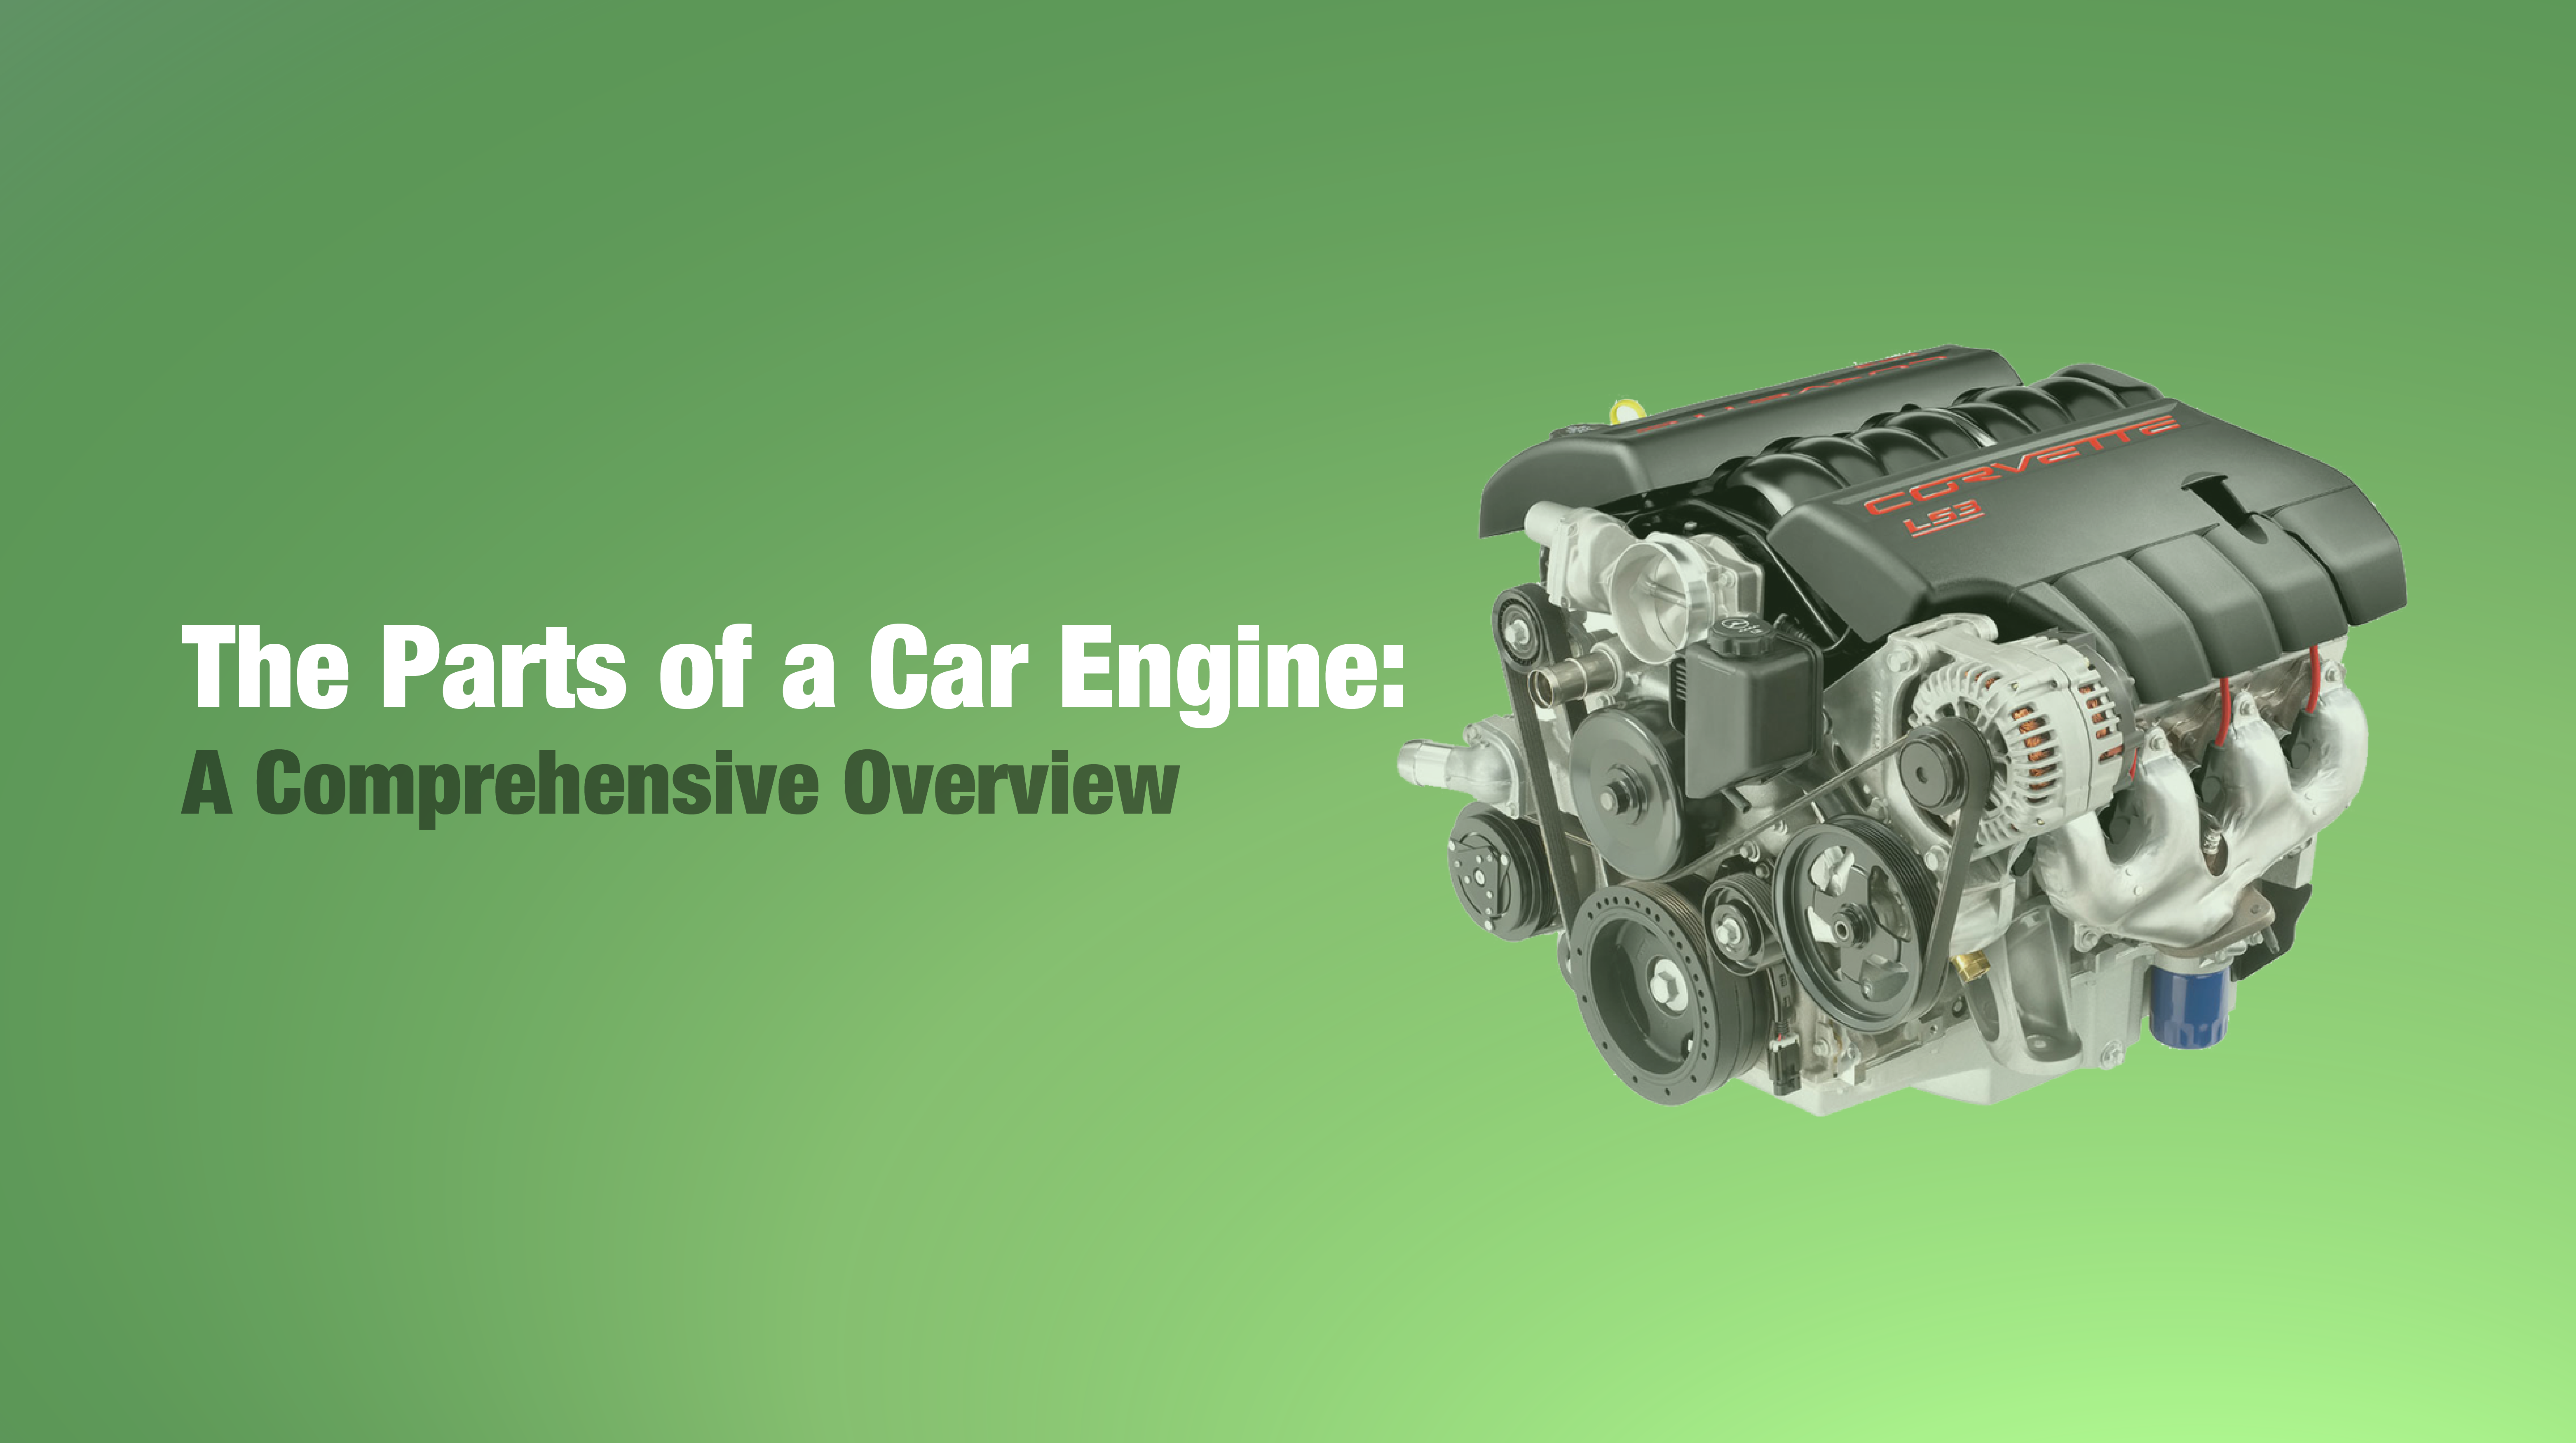 The Parts of a Car Engine: A Comprehensive Overview